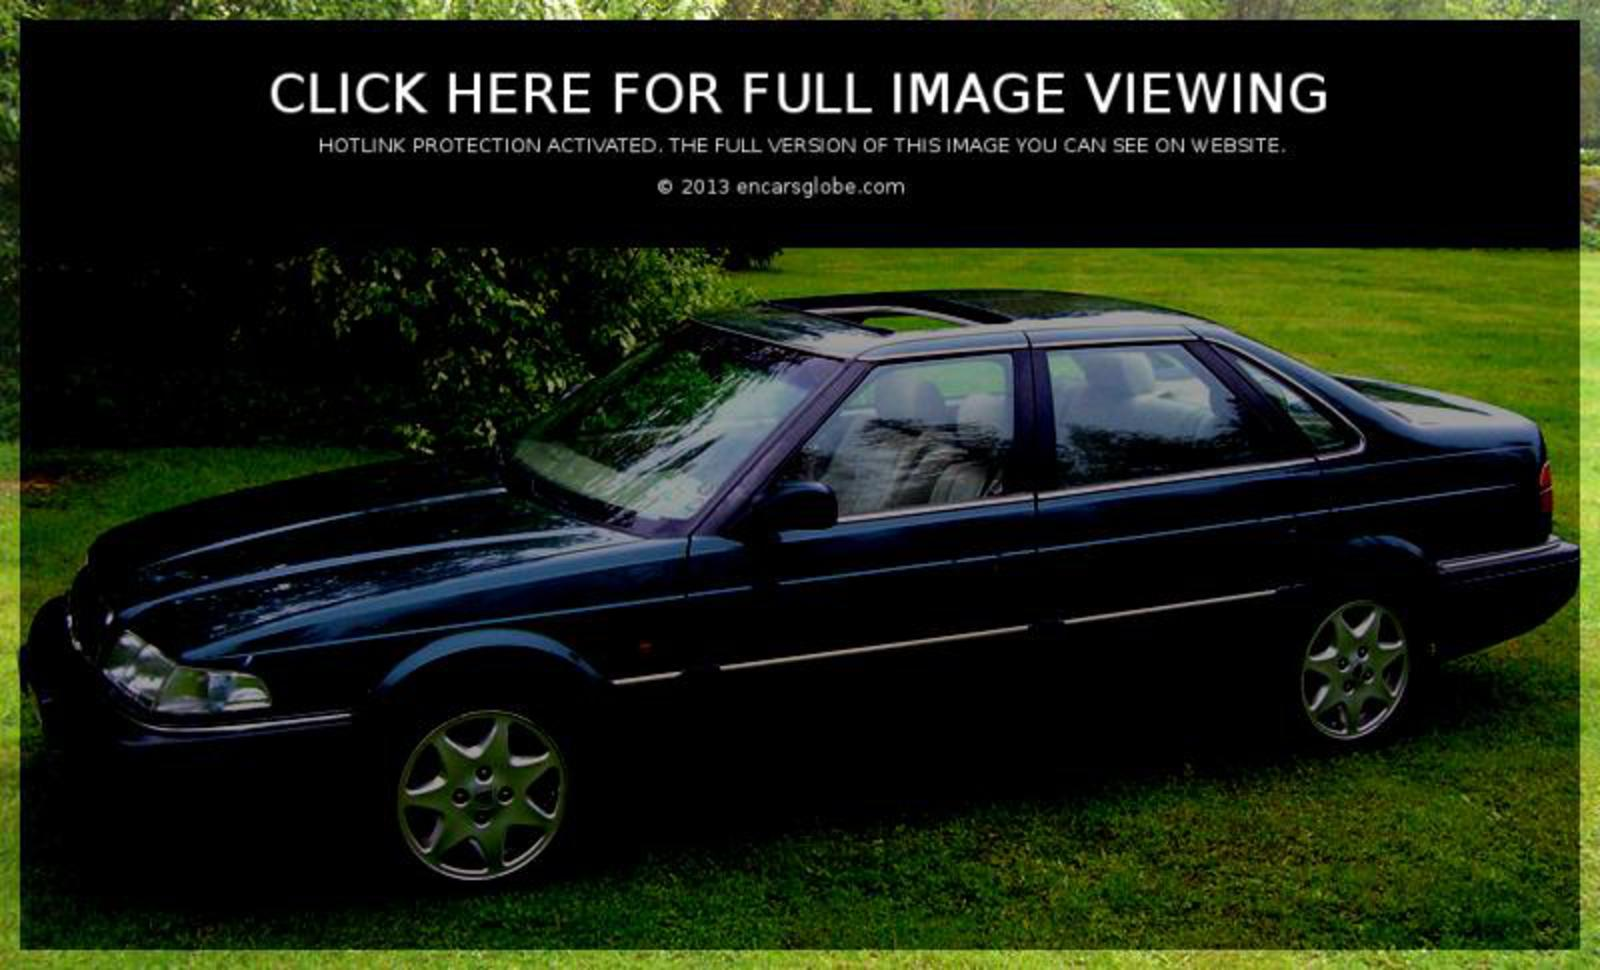 Rover 820 SI: Photo gallery, complete information about model ...